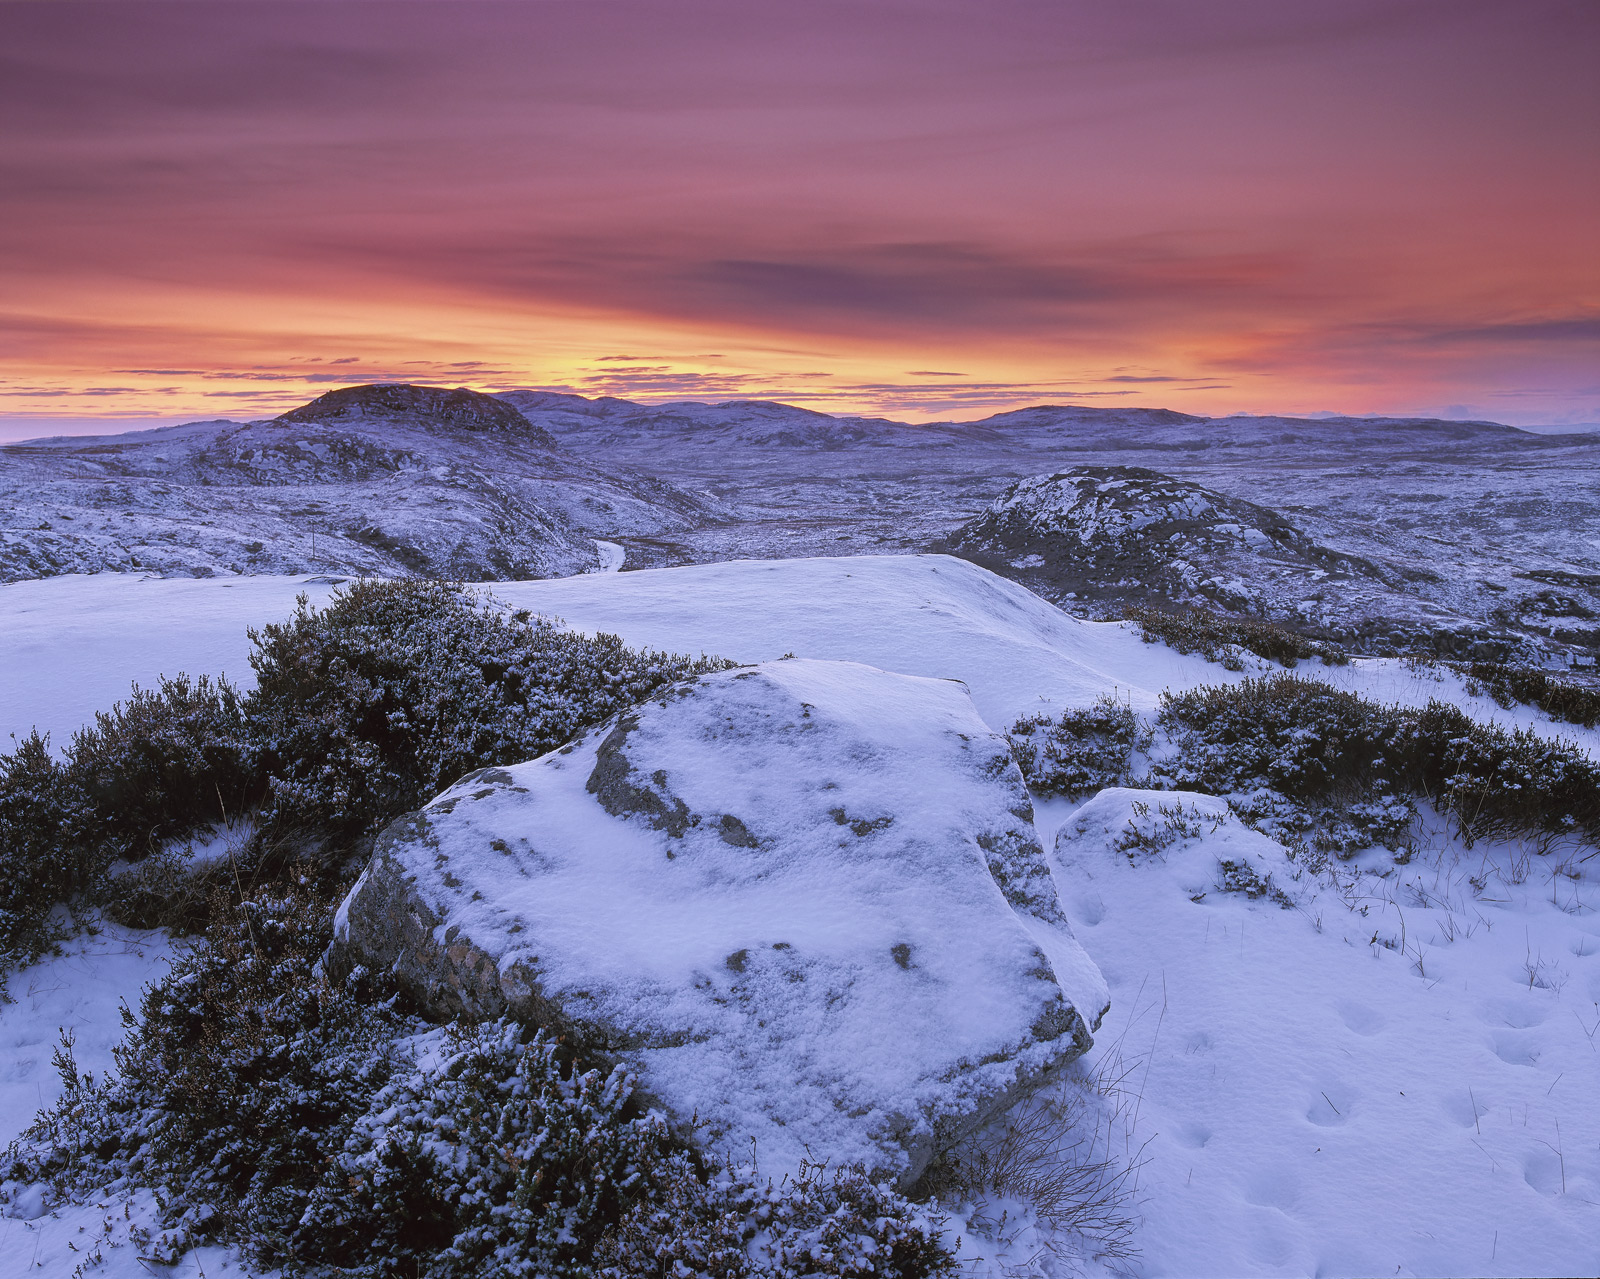 On a very chill winter evening above the viewpoint at Gruinard Bay I found myself facing away from the famed viewpoint and instead...